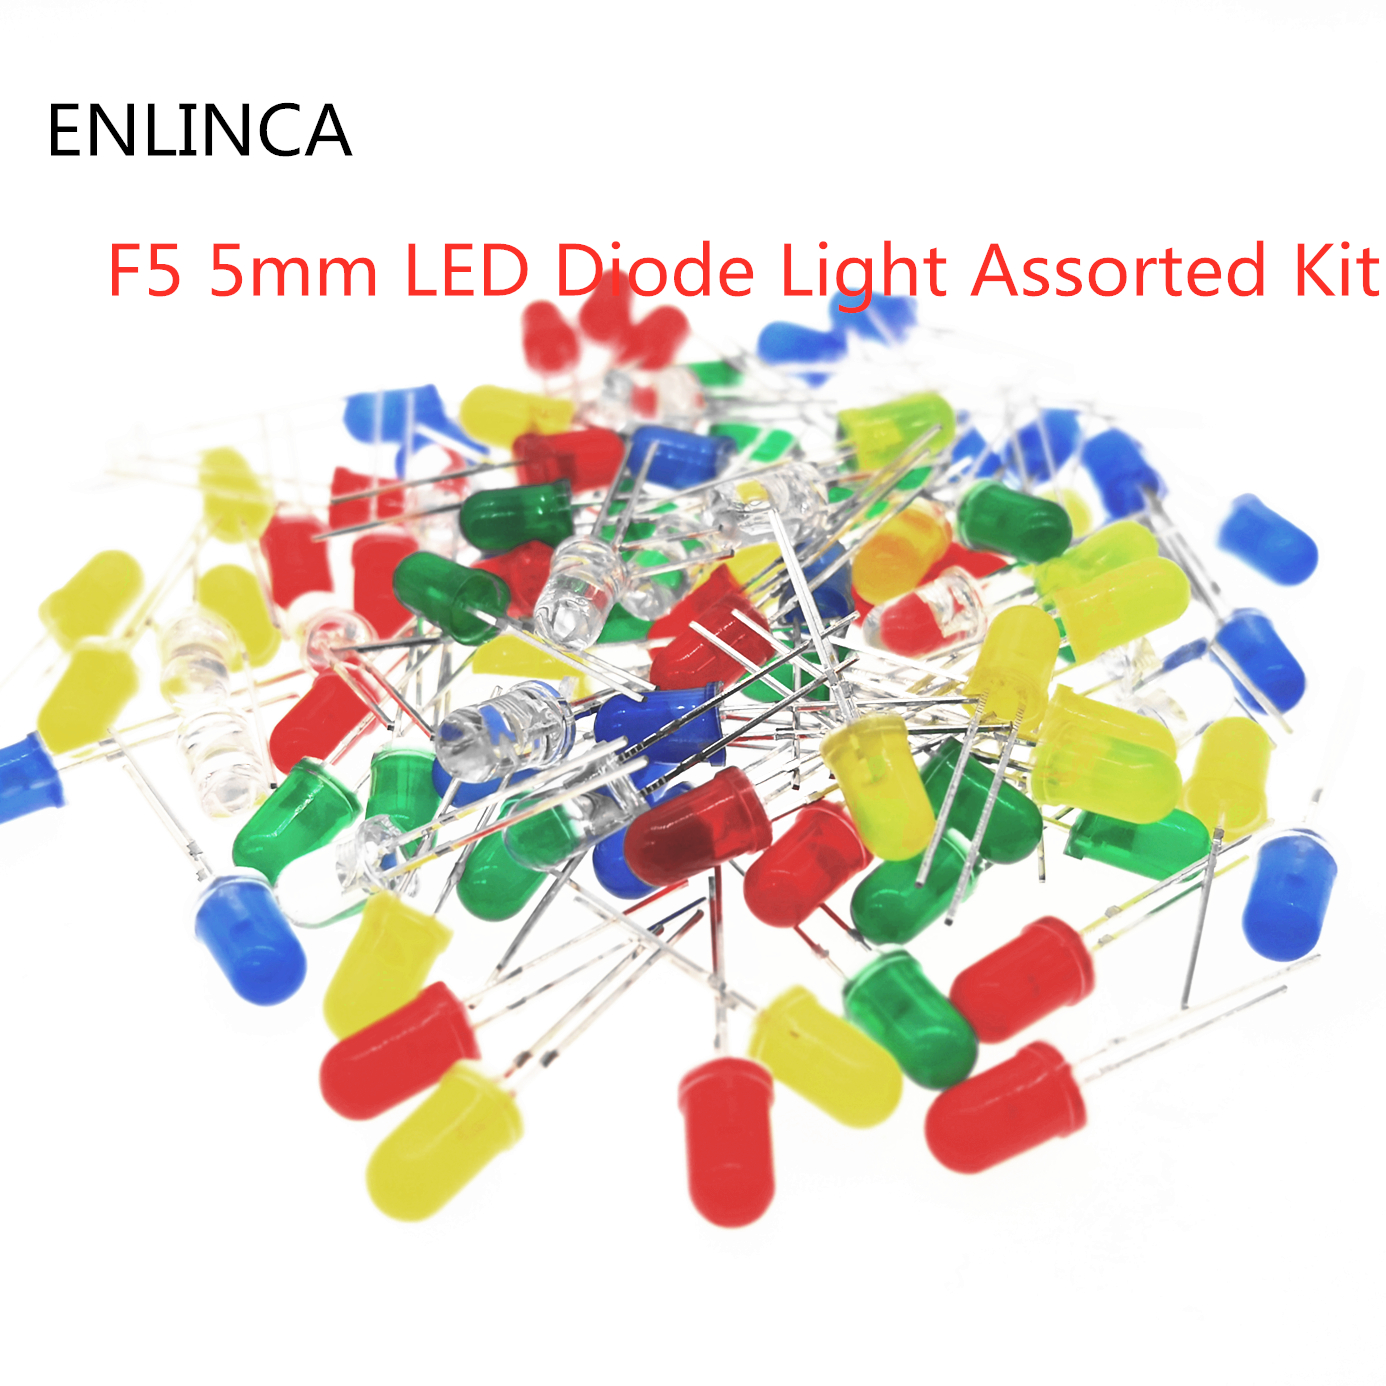 100pcs F5 5mm LED diode Light Assorted Kit LEDs Set Round White Yellow Red Green Blue electronic diy kit Purple Pink Warm white|Diodes| - AliExpress